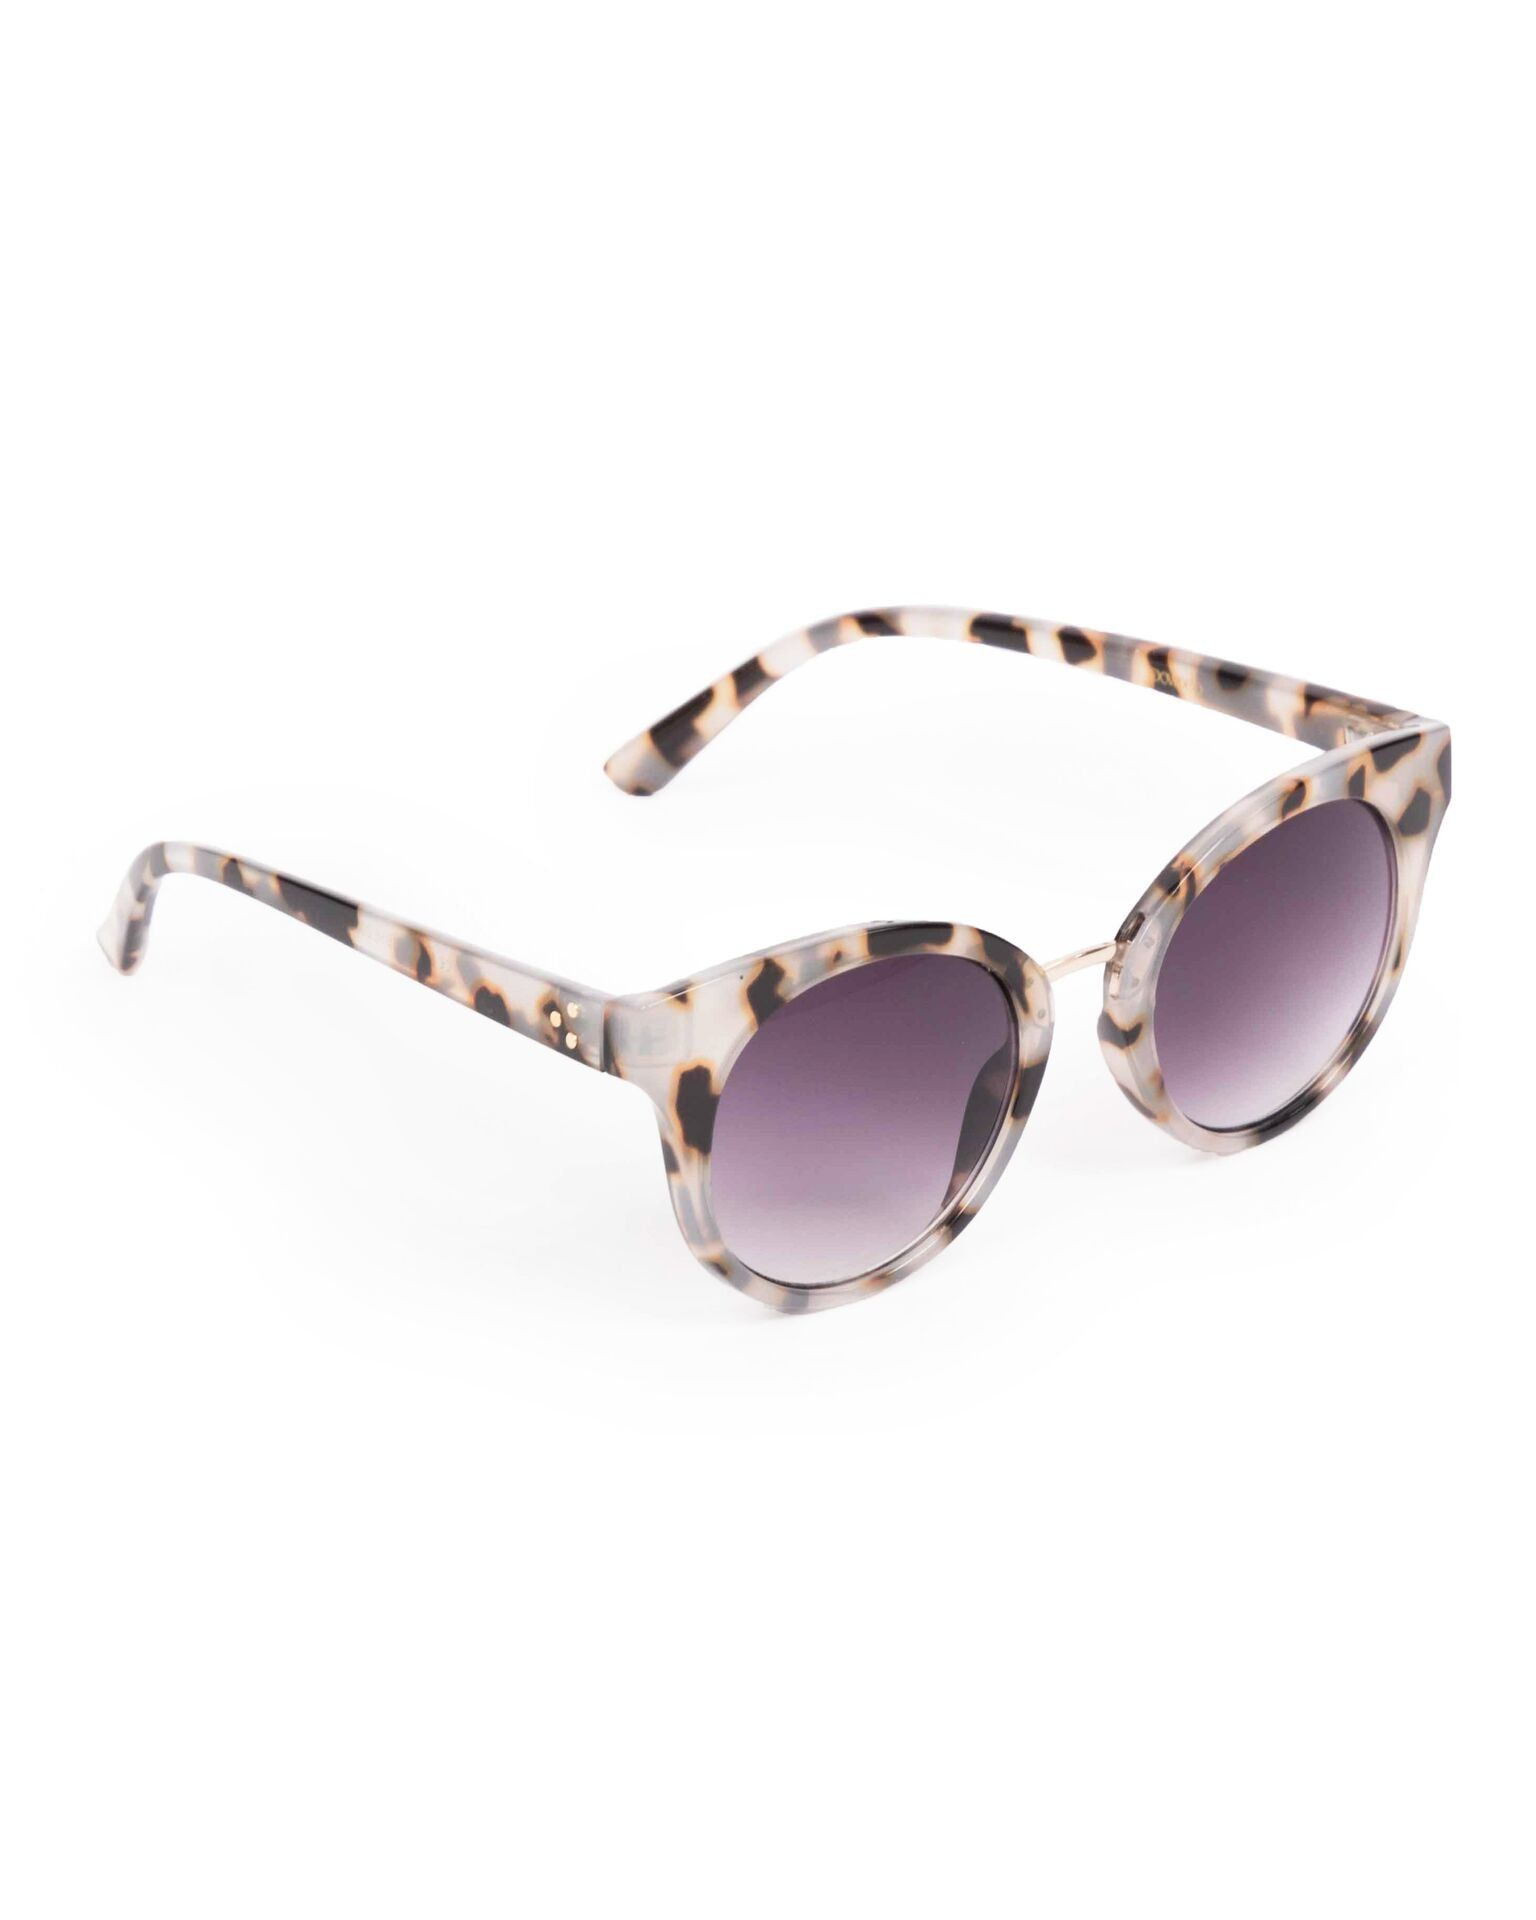 Powder Aurora Sunglasses in Tortoiseshell